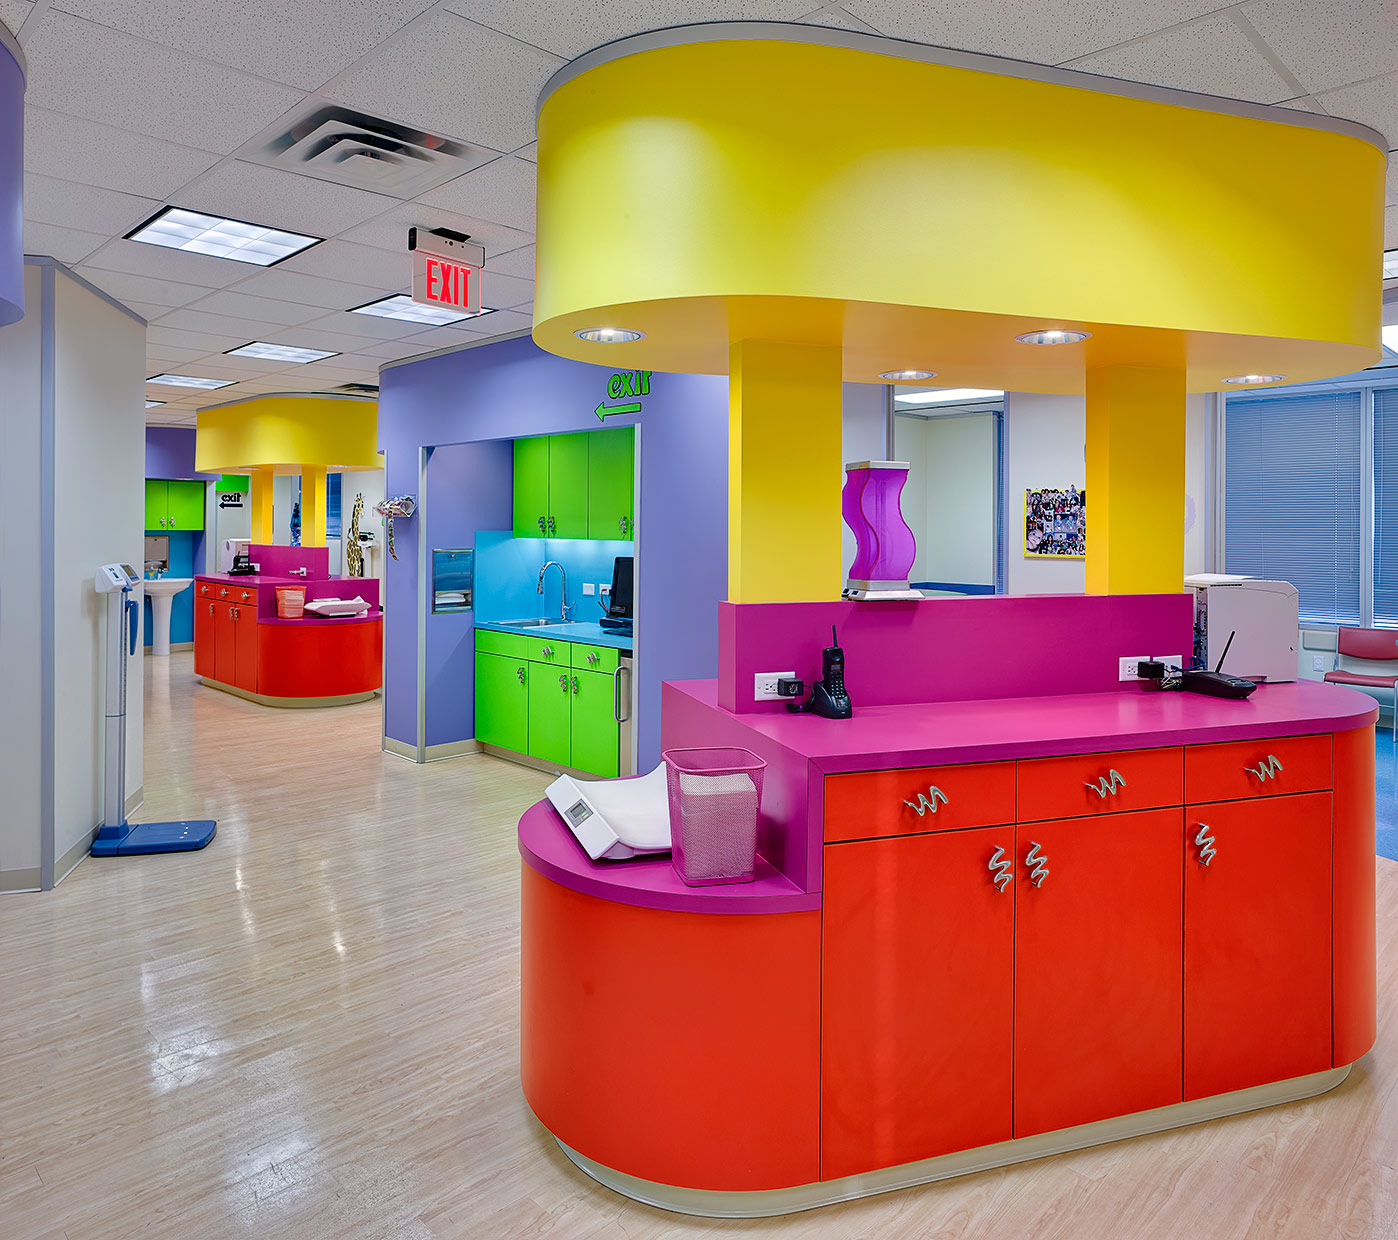 Bootin/Savrick Pediatric Offices